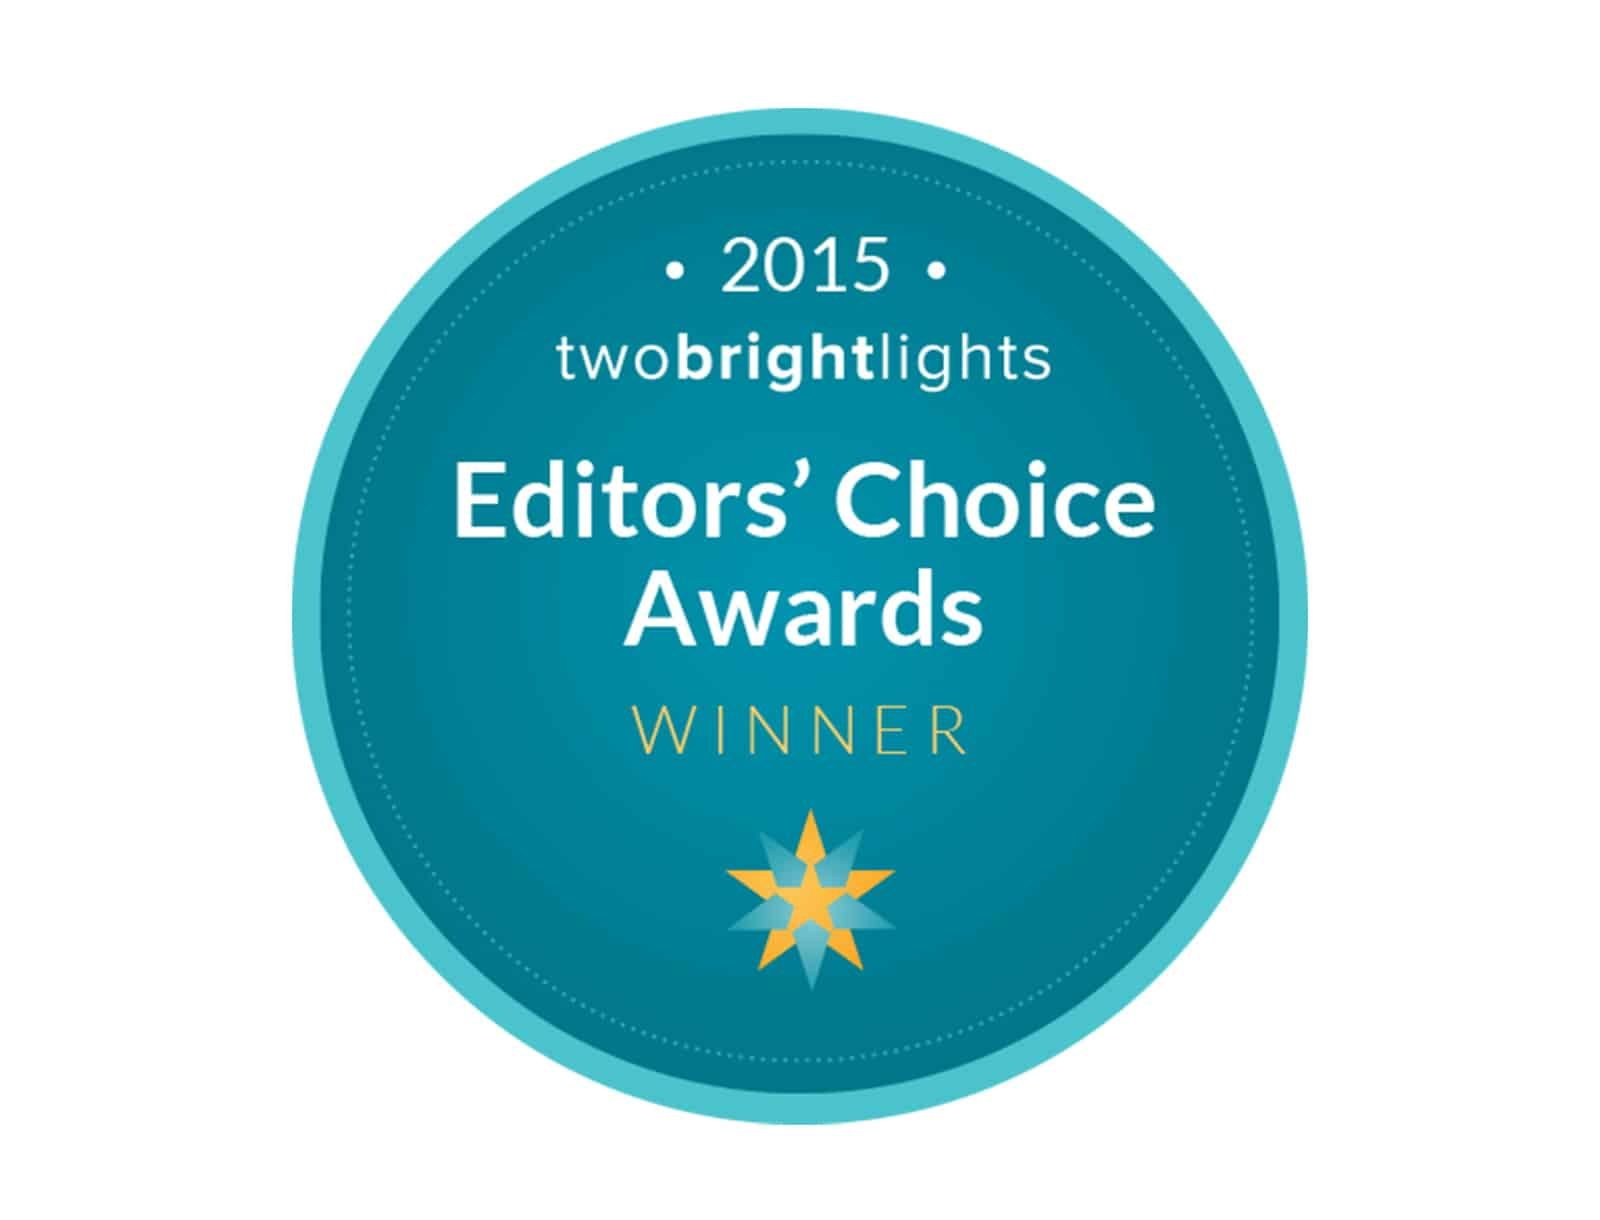 We Won Editor's Choice Award 2015 From Two Bright Lights!